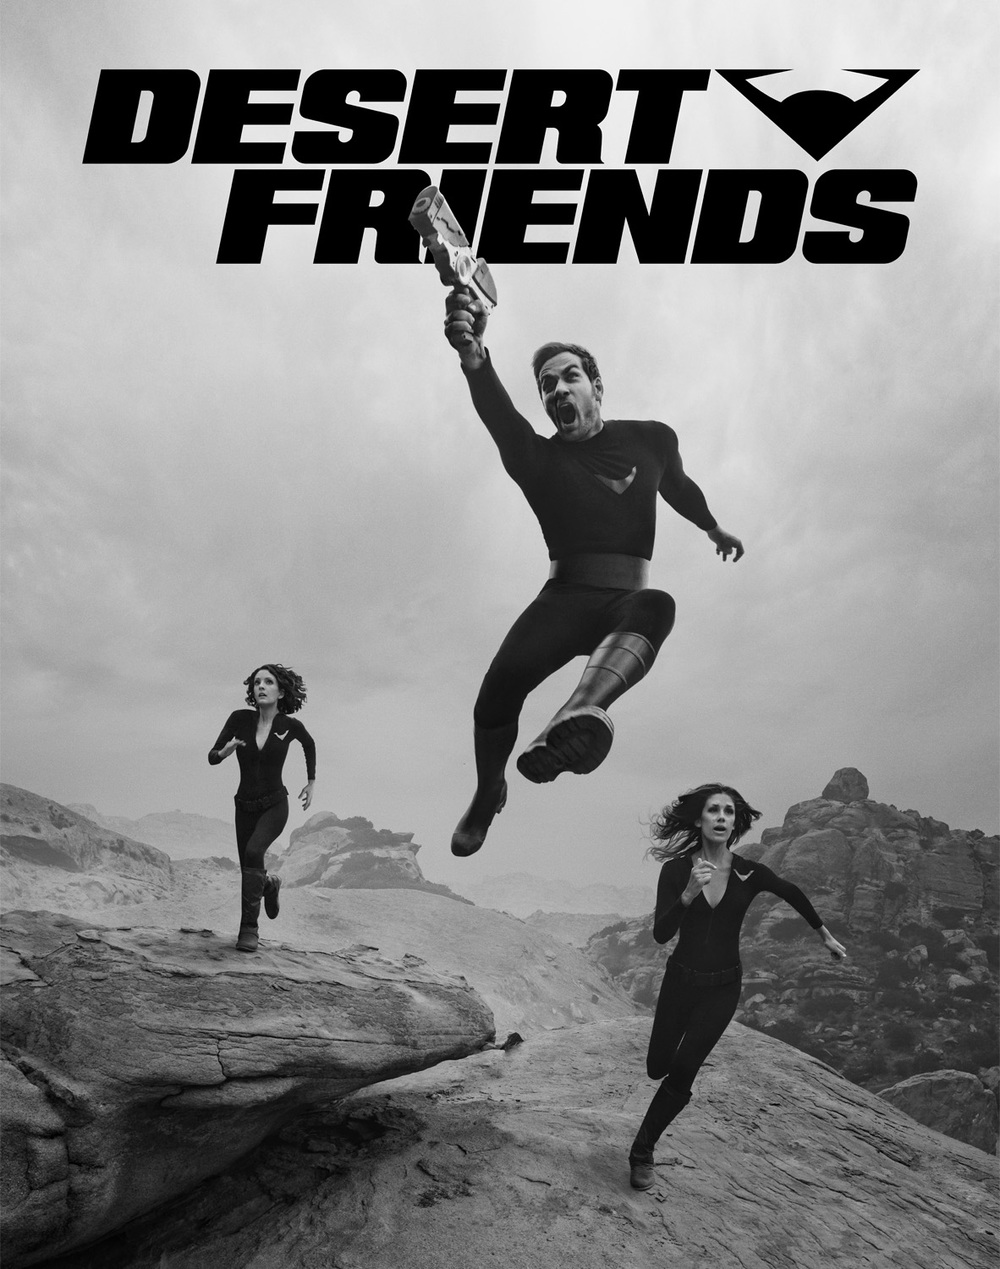 desert_friends_poster_no_bottom_text.jpg